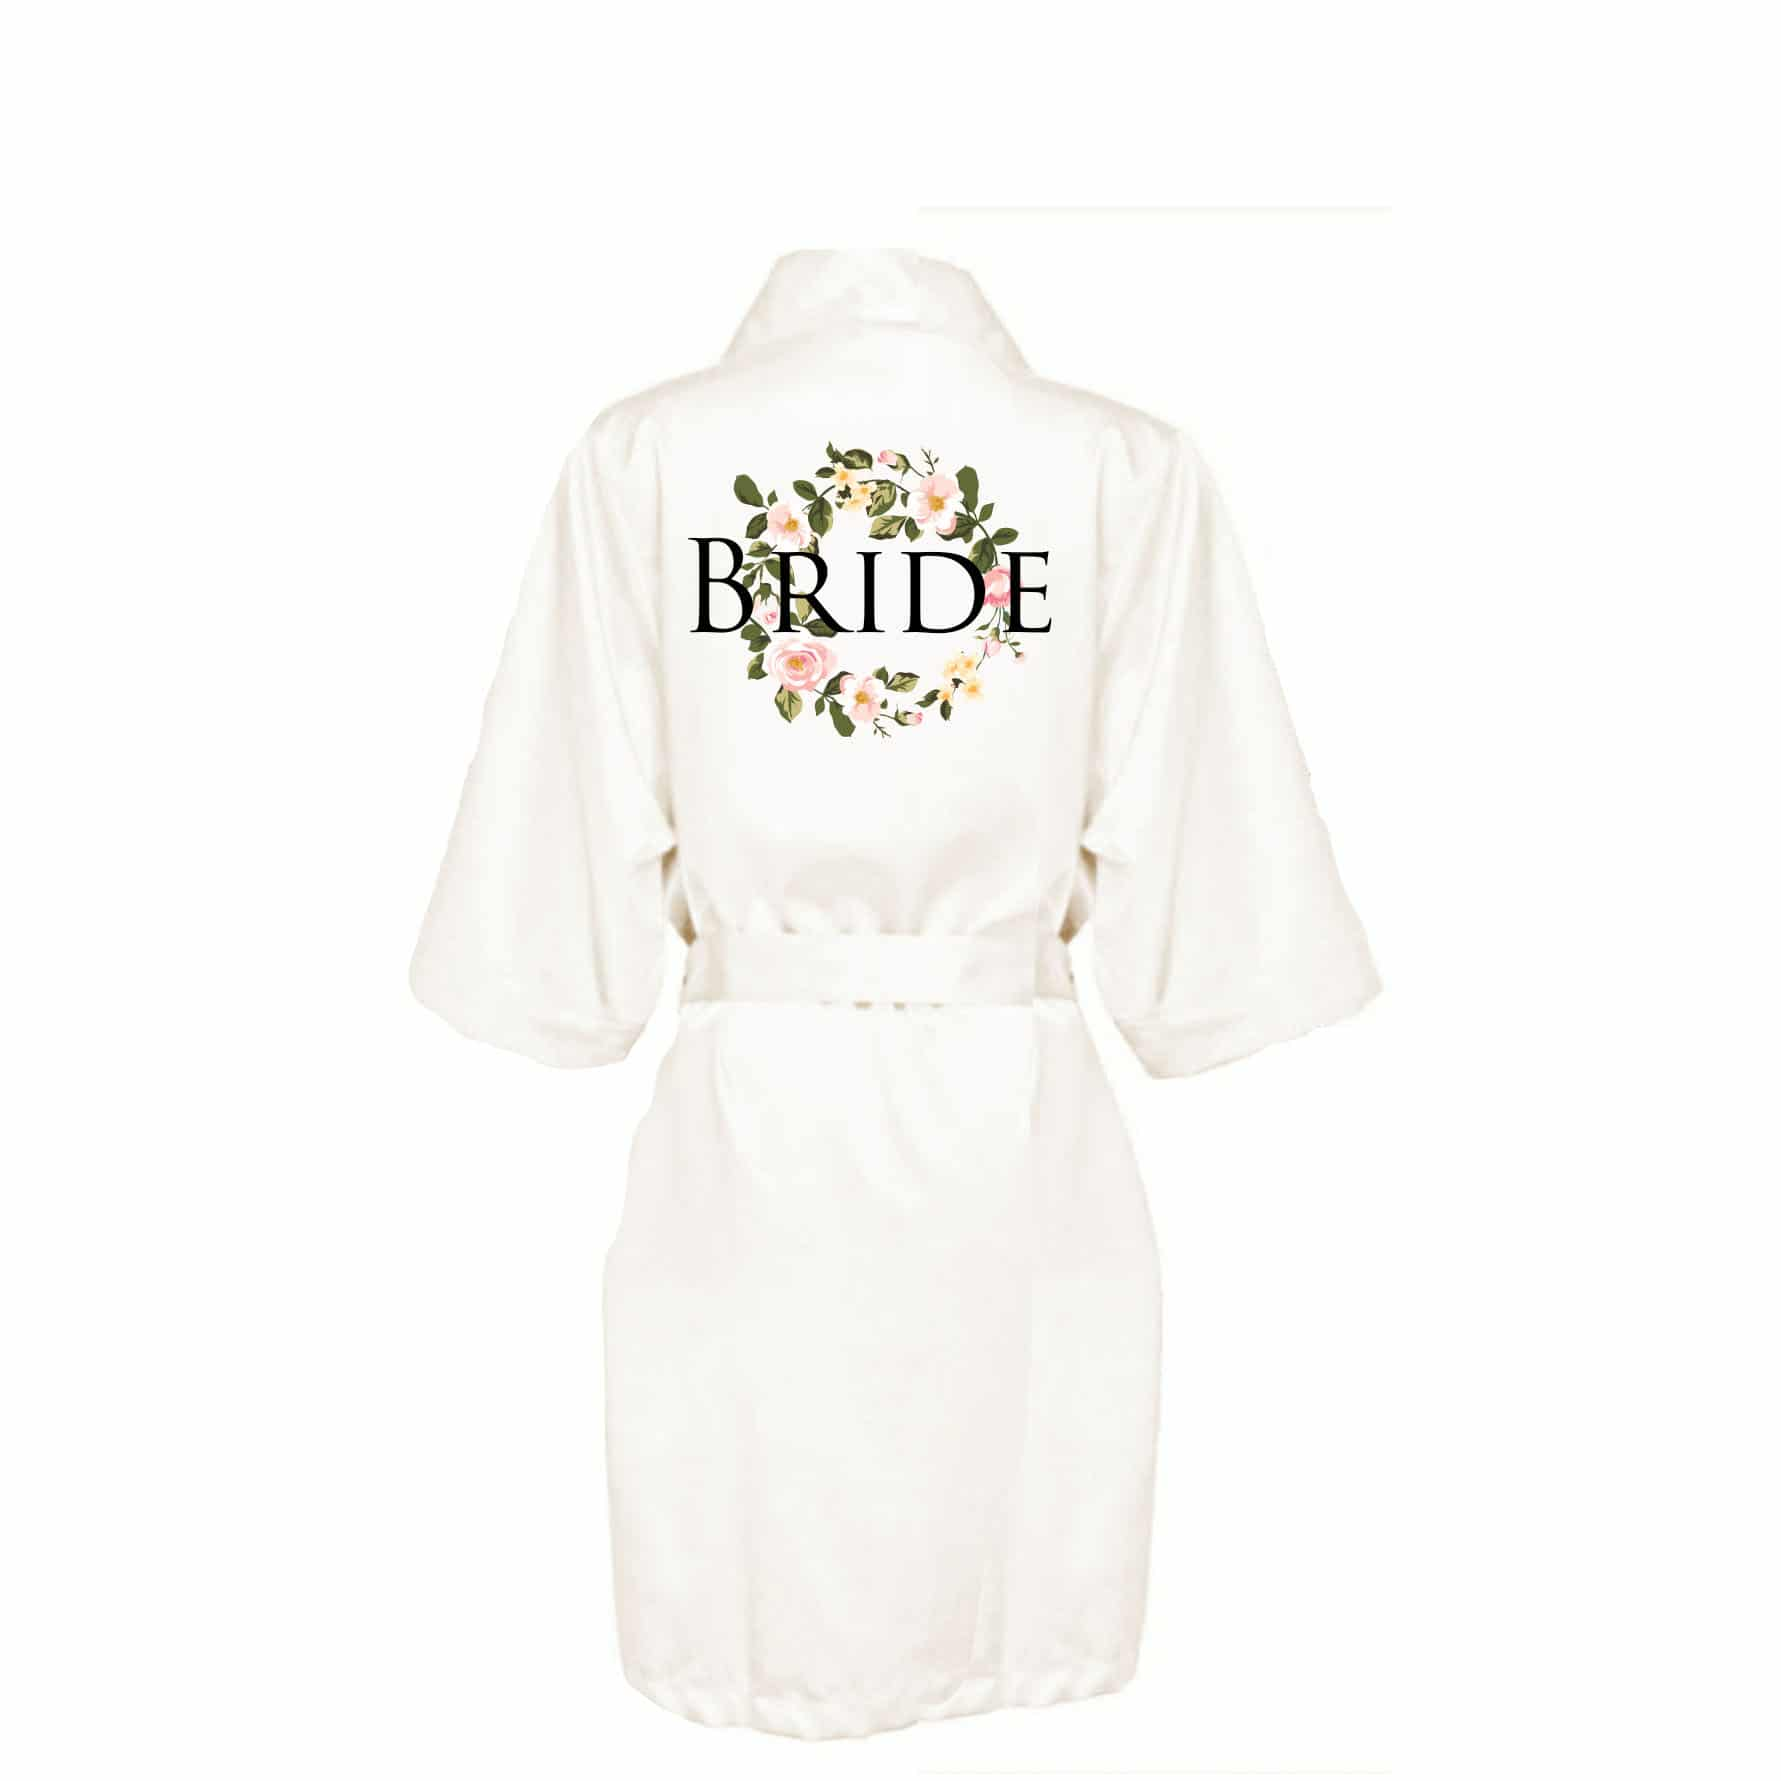 Bridal robe Personalised